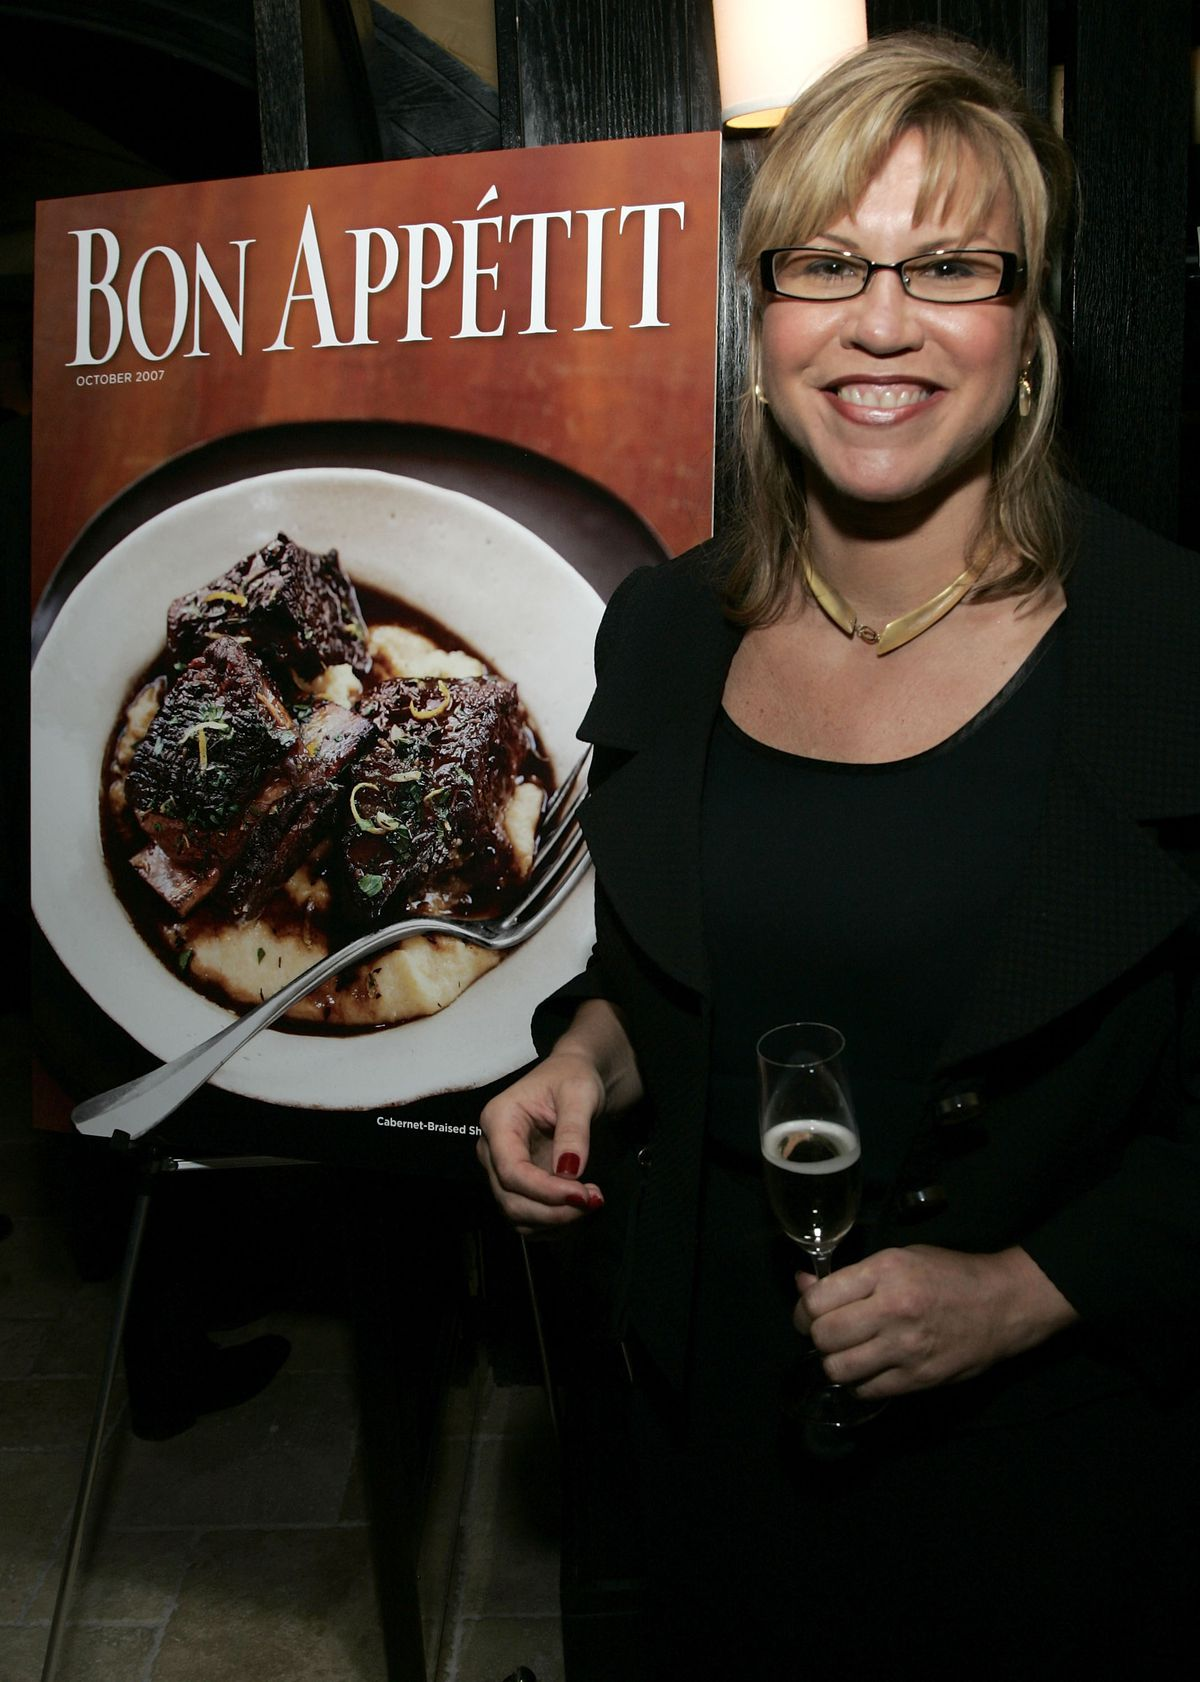 Audrey Saunders, with blonde hair and black-rimmed glasses, holds a Champagne flute in front of a Bon Appetit sign.